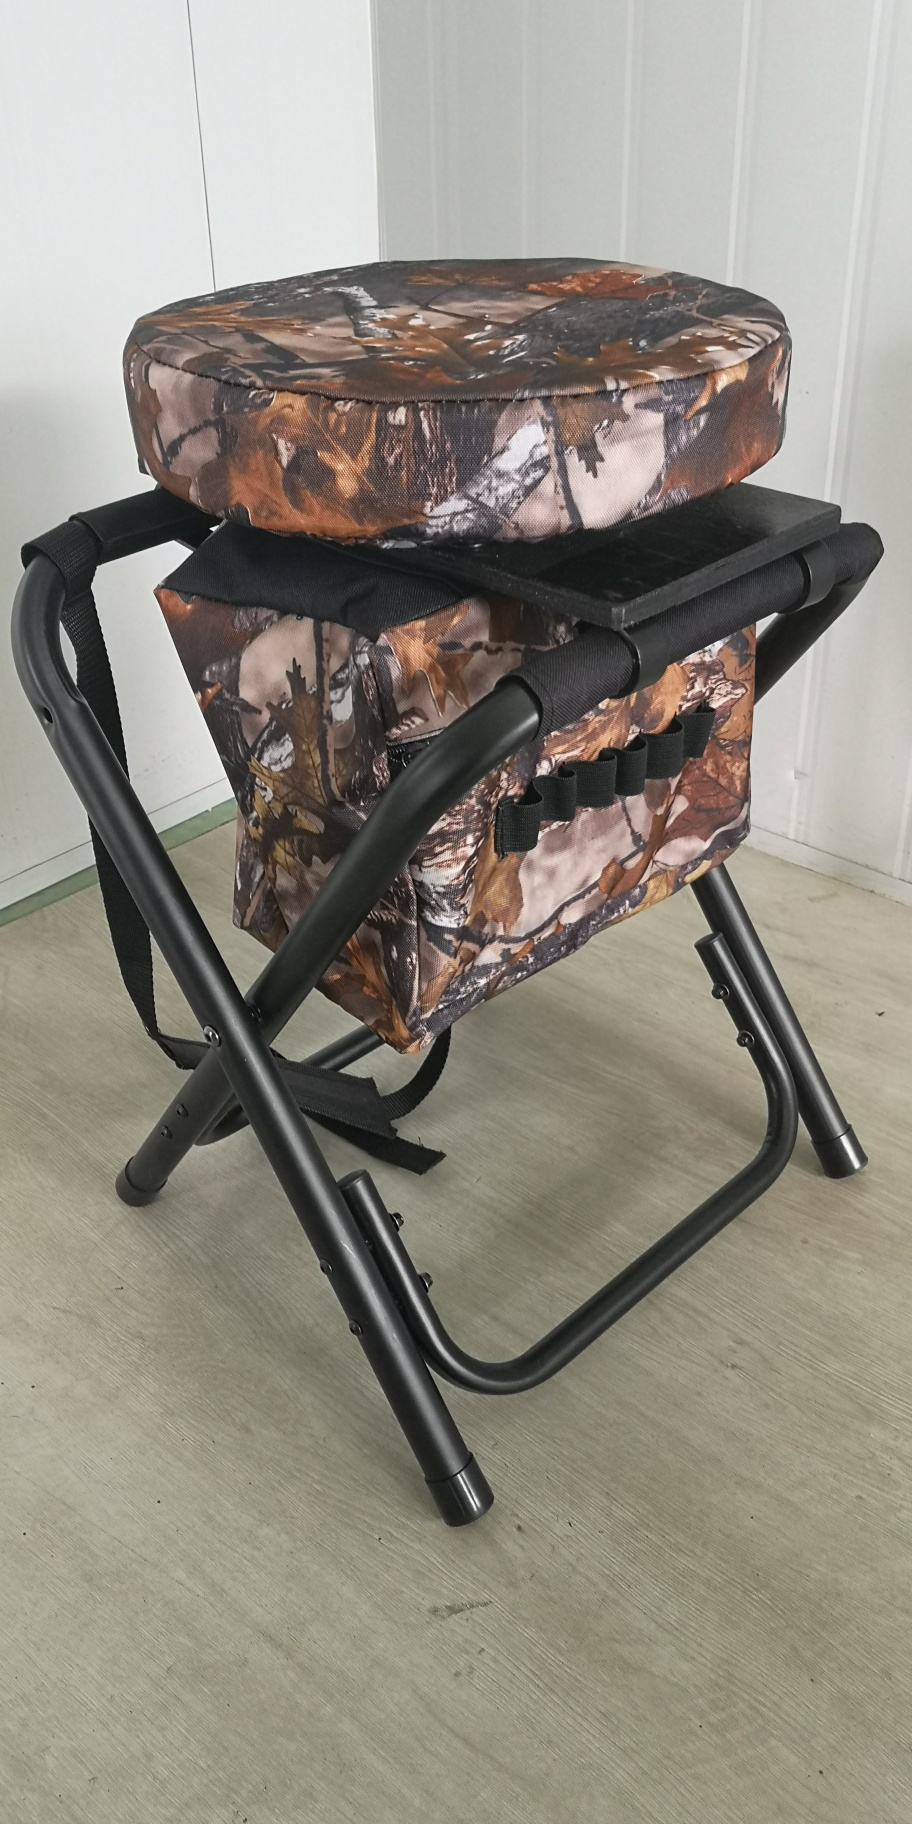 360° Hunting Swivel Chair without backrest